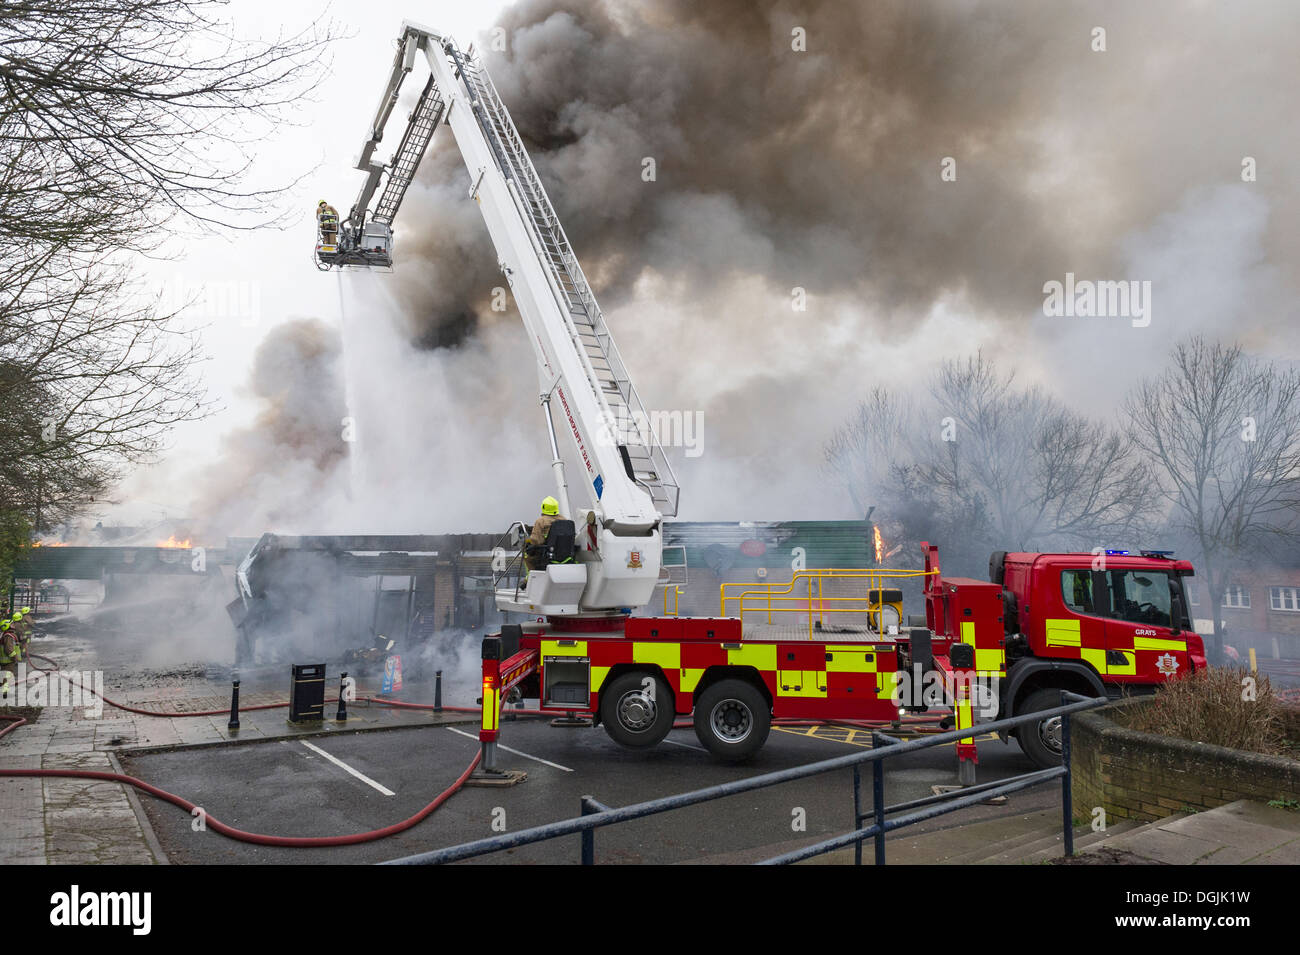 Essex Fire Service tackling a fire. - Stock Image